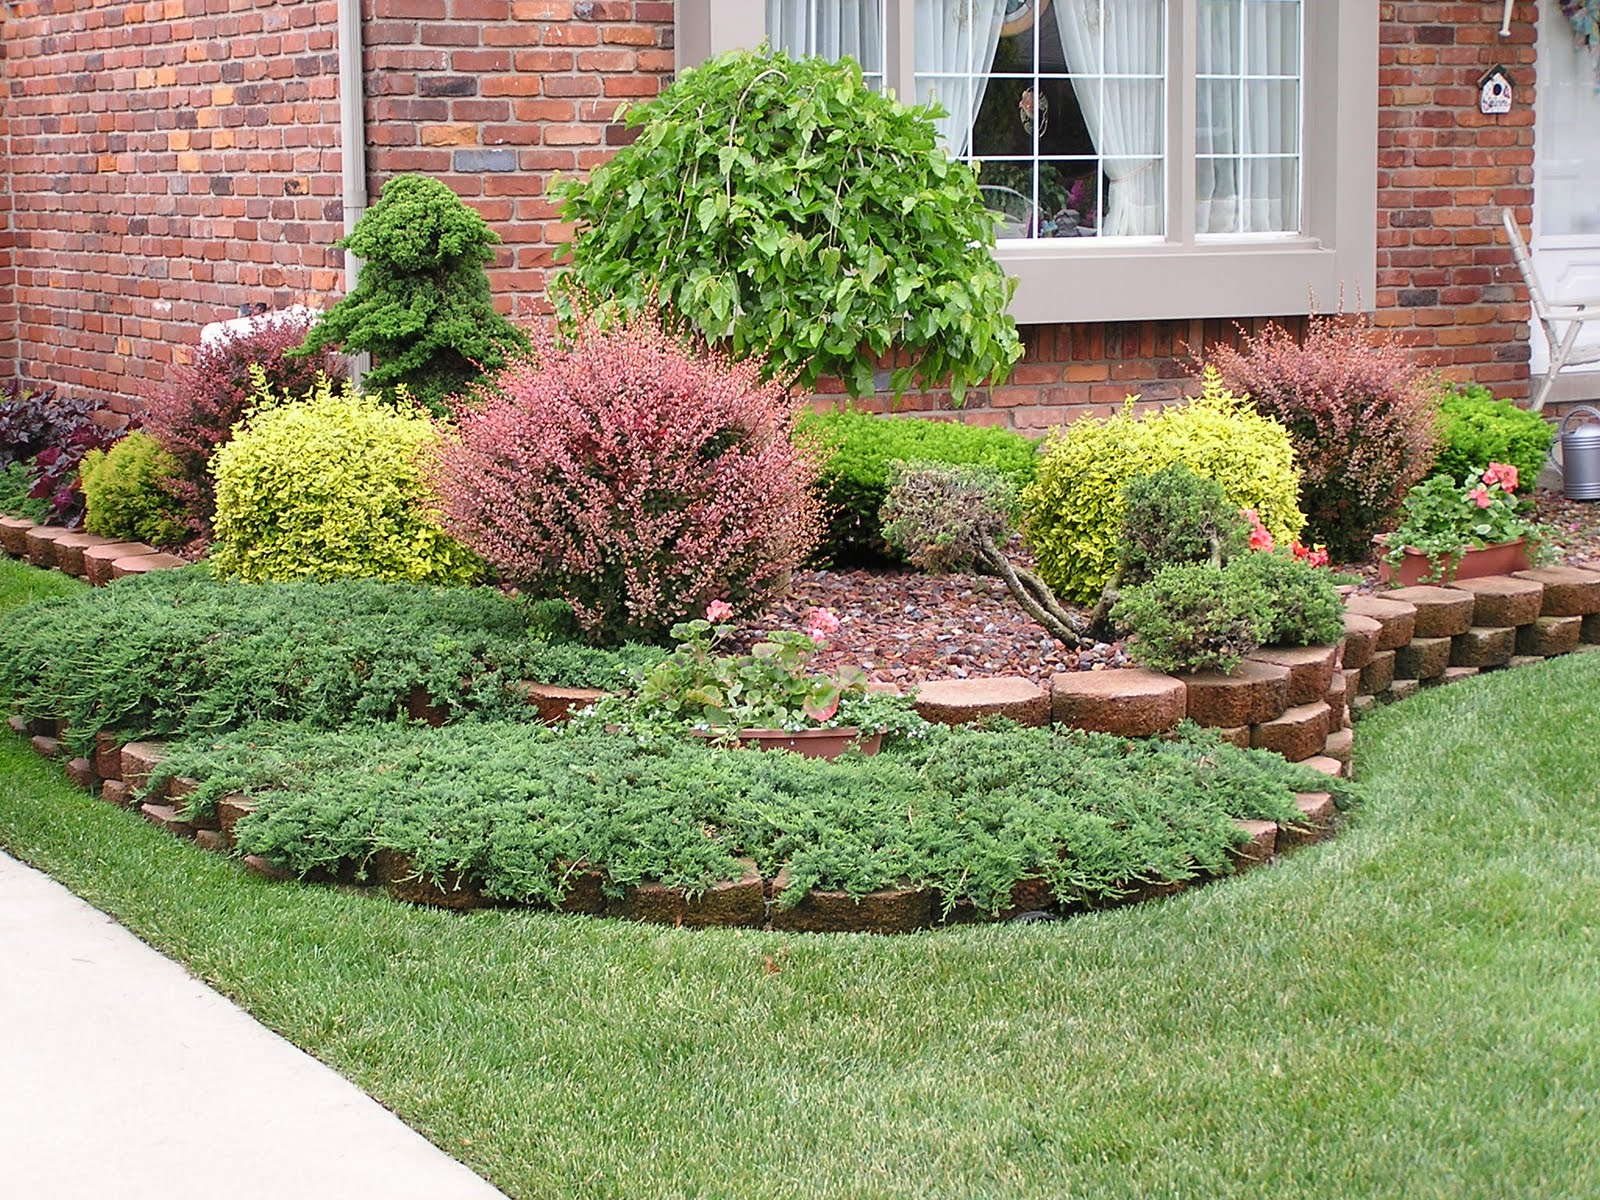 D i y d e s i g n curb appeal part 2 the landscaping for Garden design plants